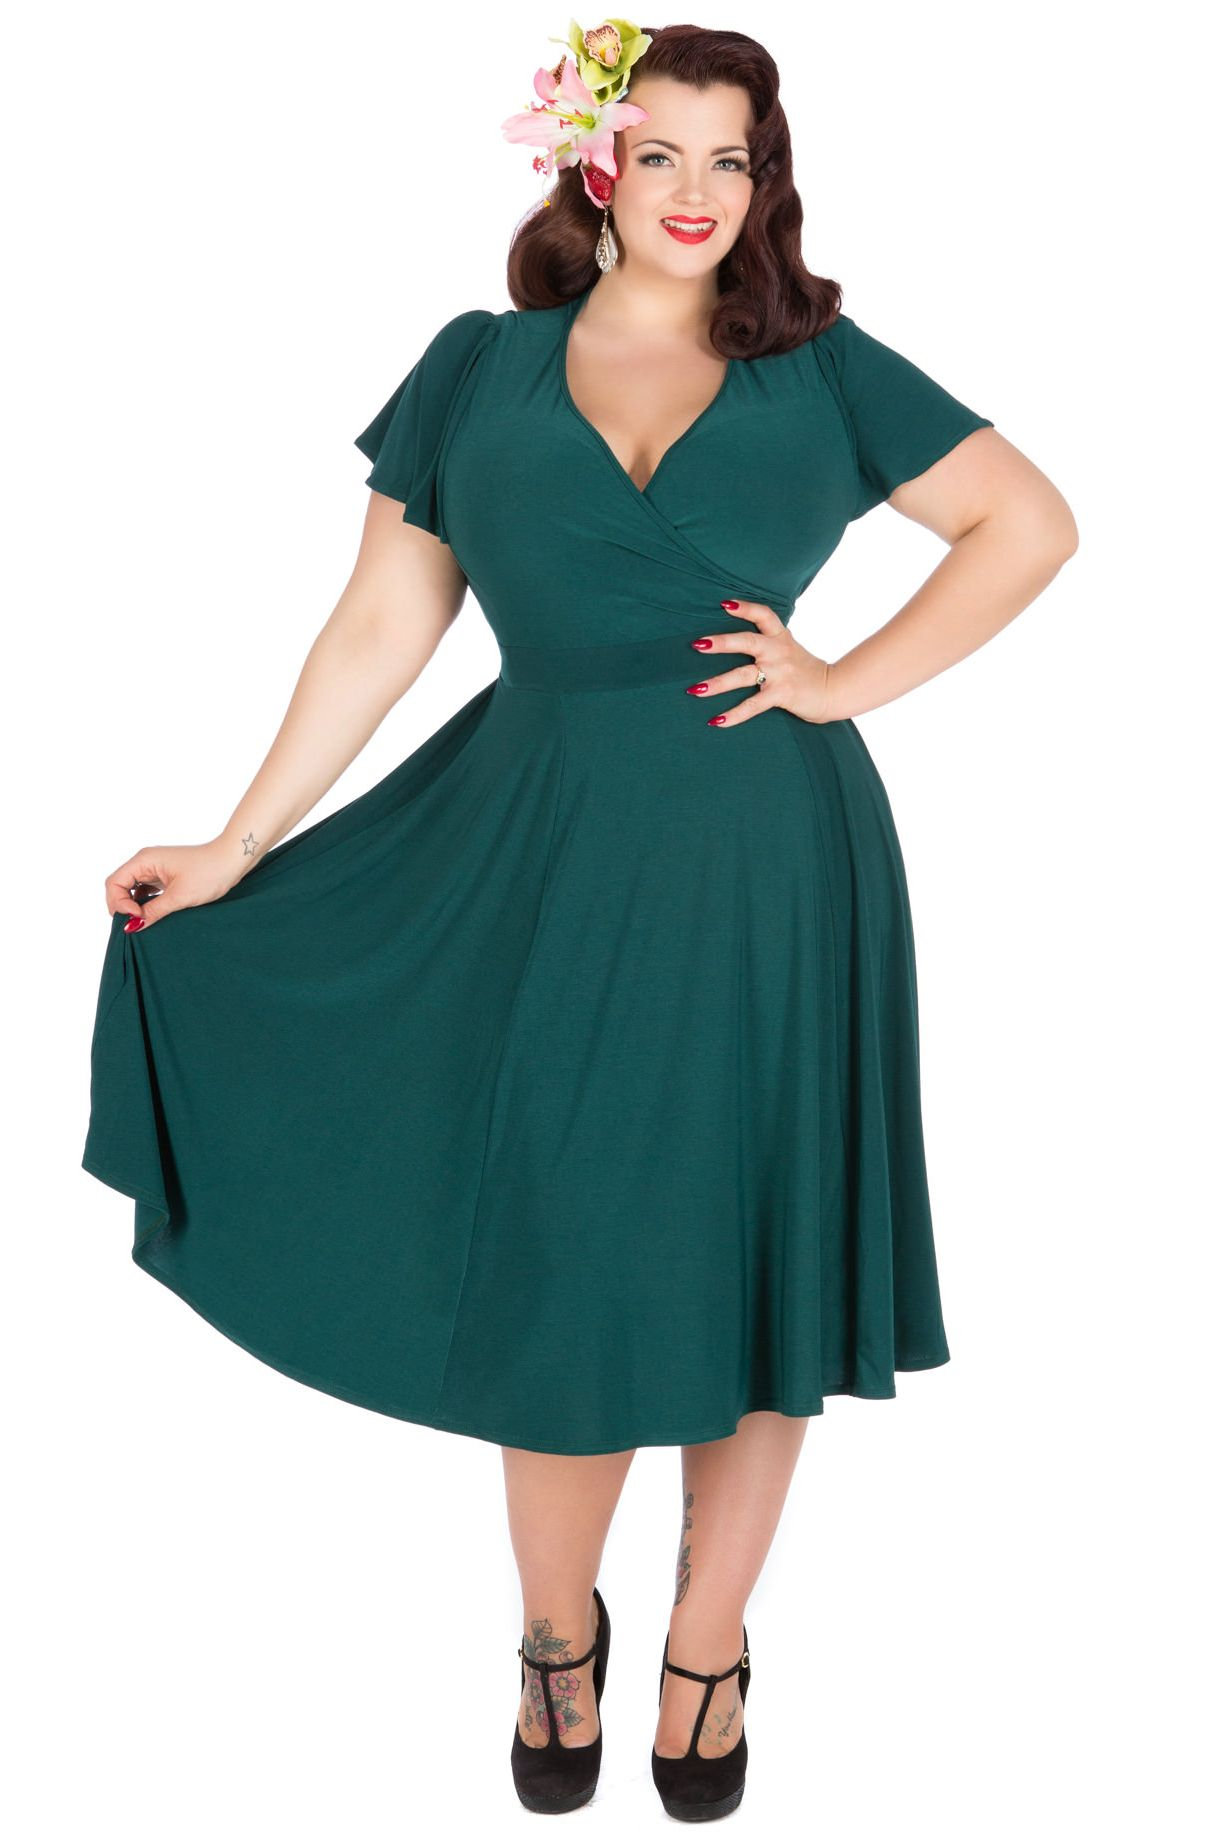 teal lyra dress | vintage style dresses, plus size vintage and